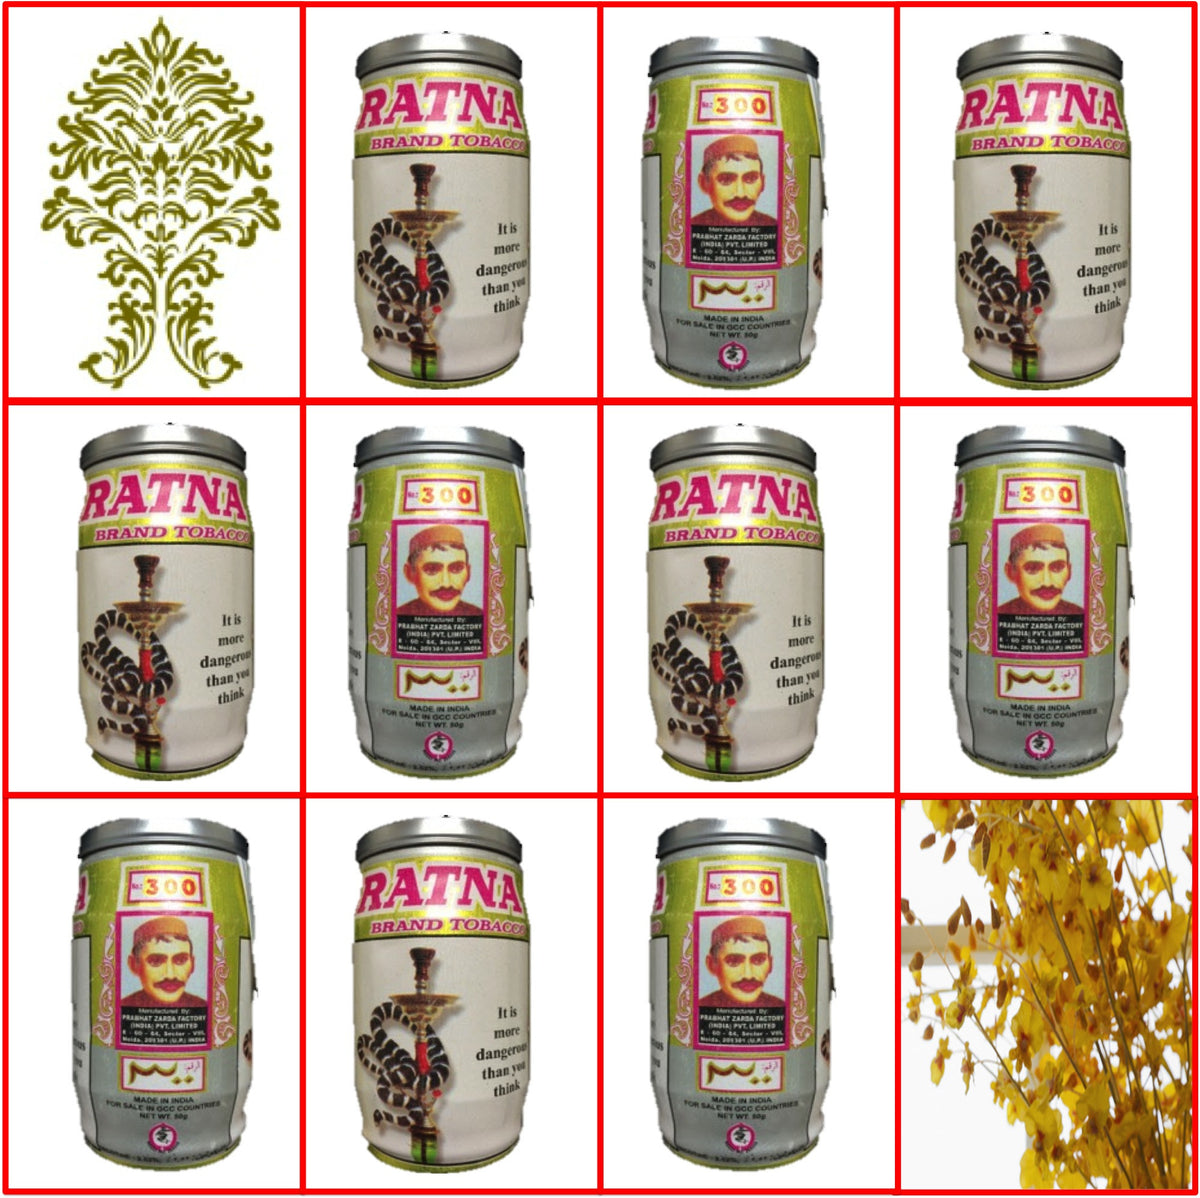 Number ten cans for sale - 10 Cans Ratna 300 Aroma Rich Tobacco 50g Ea Aug 2015